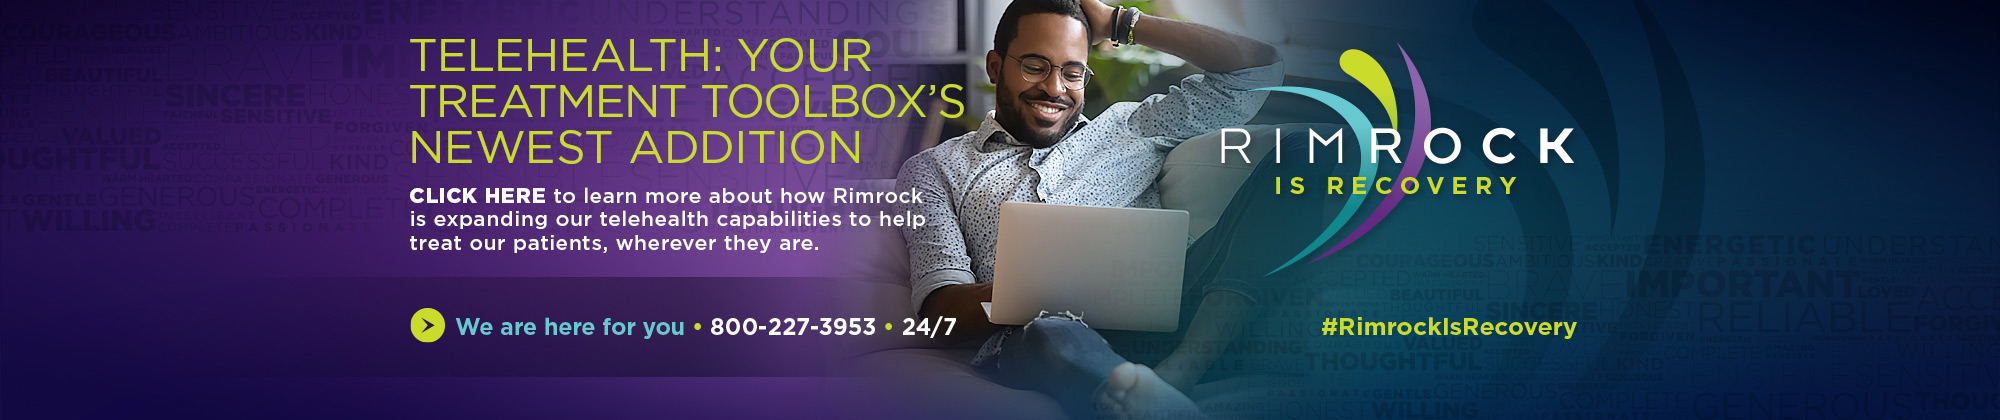 Rimrock - Rimrock is Recovery - Telehealth